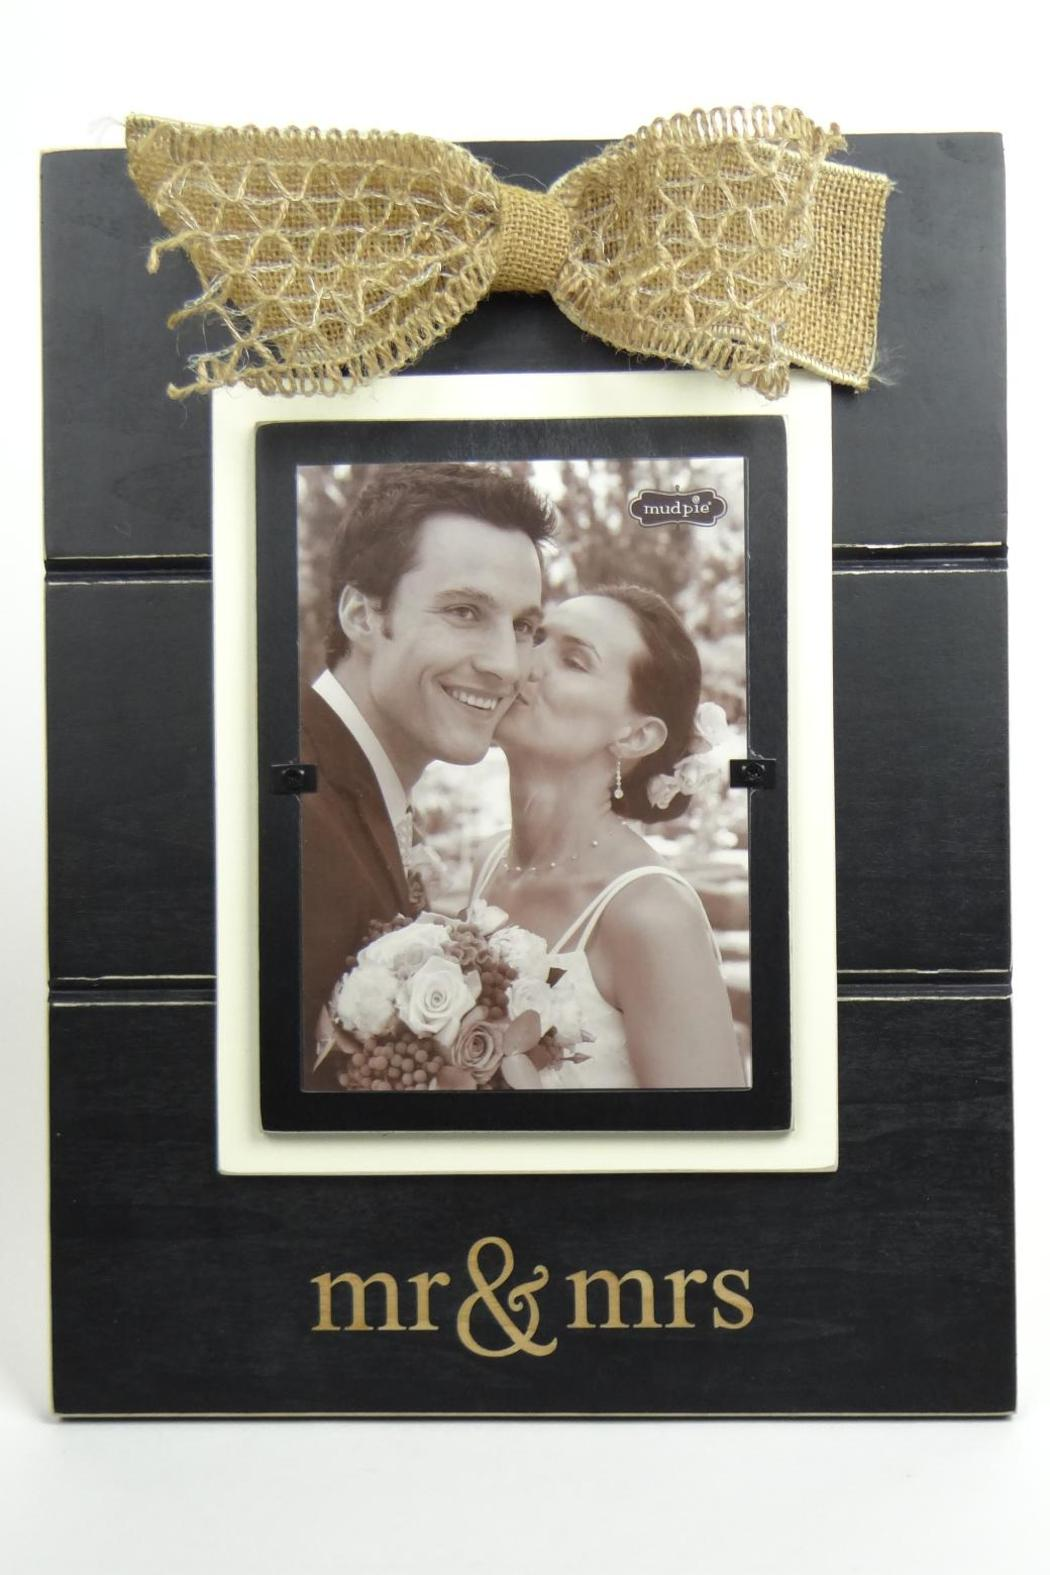 mud pie mr mrs frame front cropped image - Mr And Mrs Frame